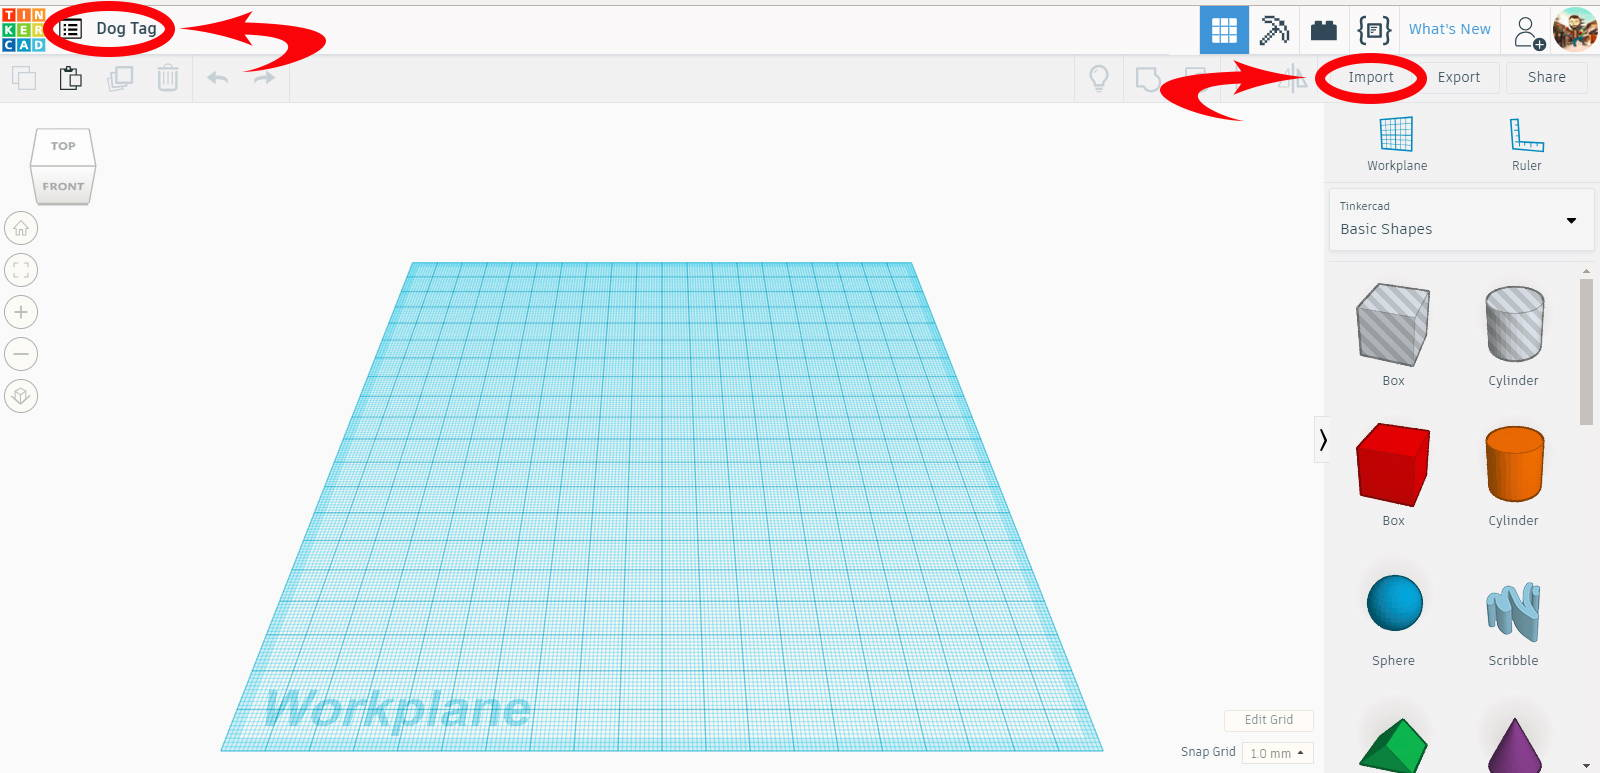 After Signing In To Tinkercad Youll Next Want To Import The Blank Dog Tag File Click The Import Link In The Upper Right Hand Corner Of Your Screen And